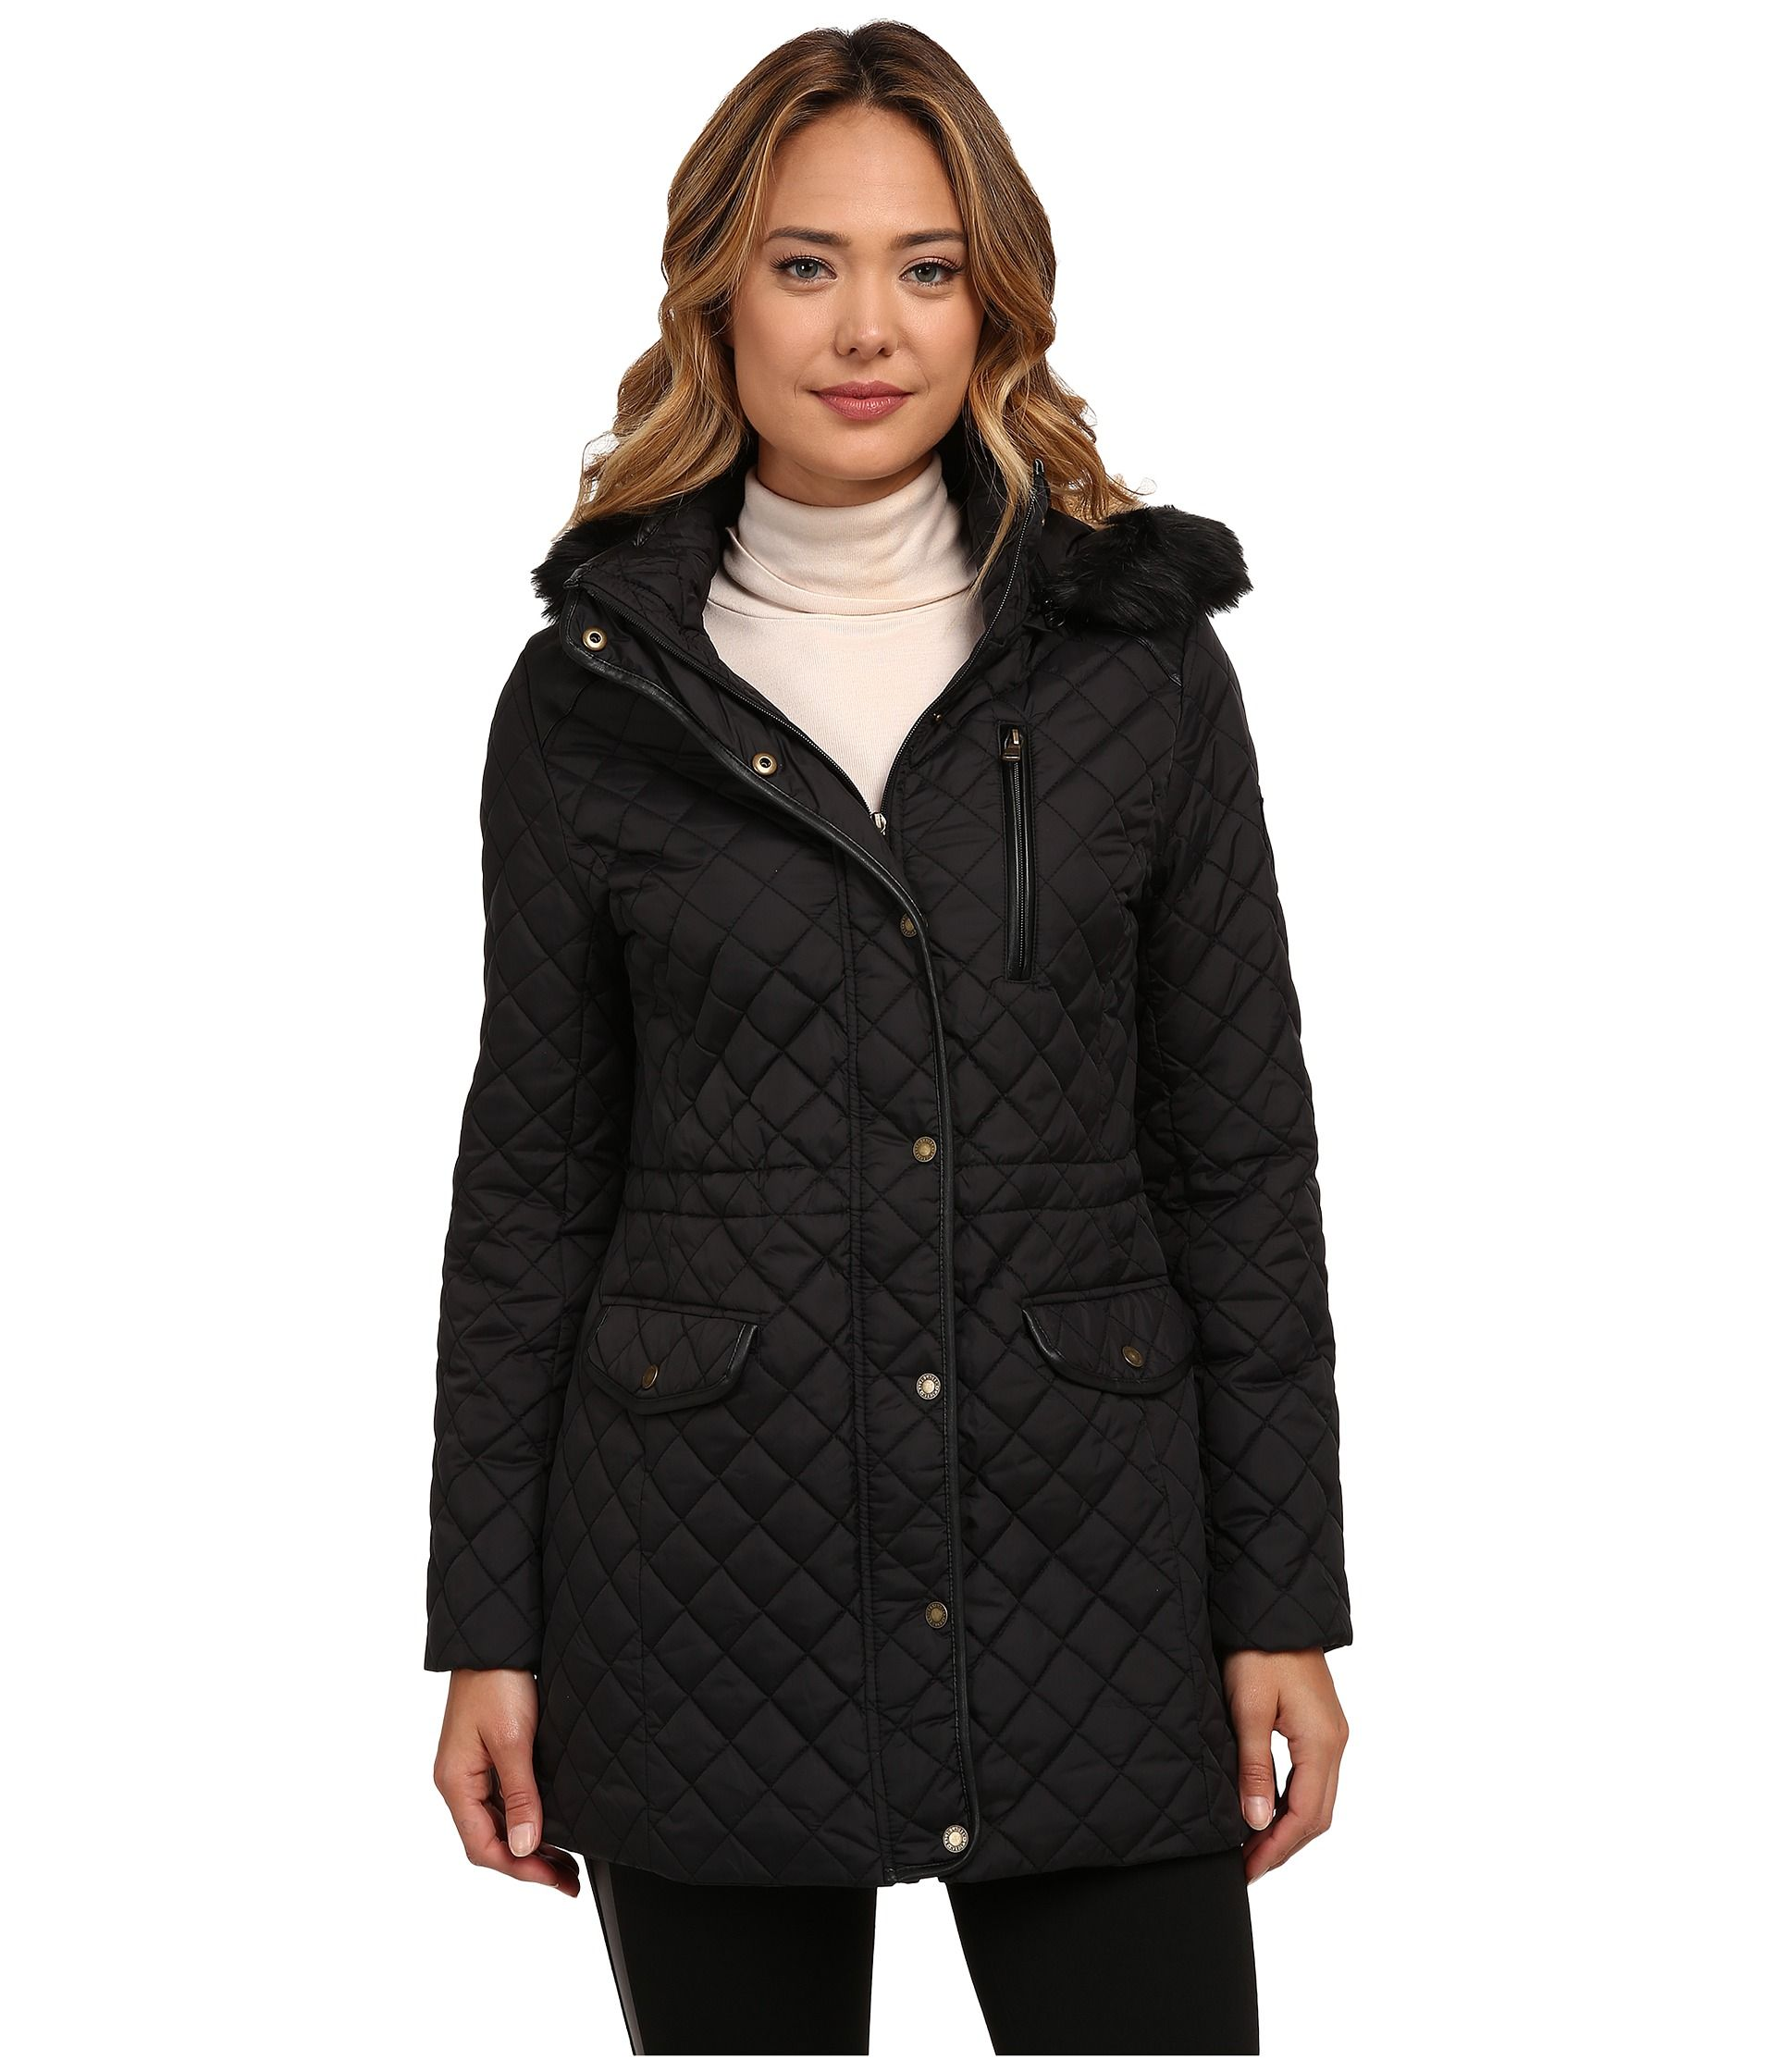 lightweight jacket quilted biker main leather kids faux quilt black itm new girls age yrs